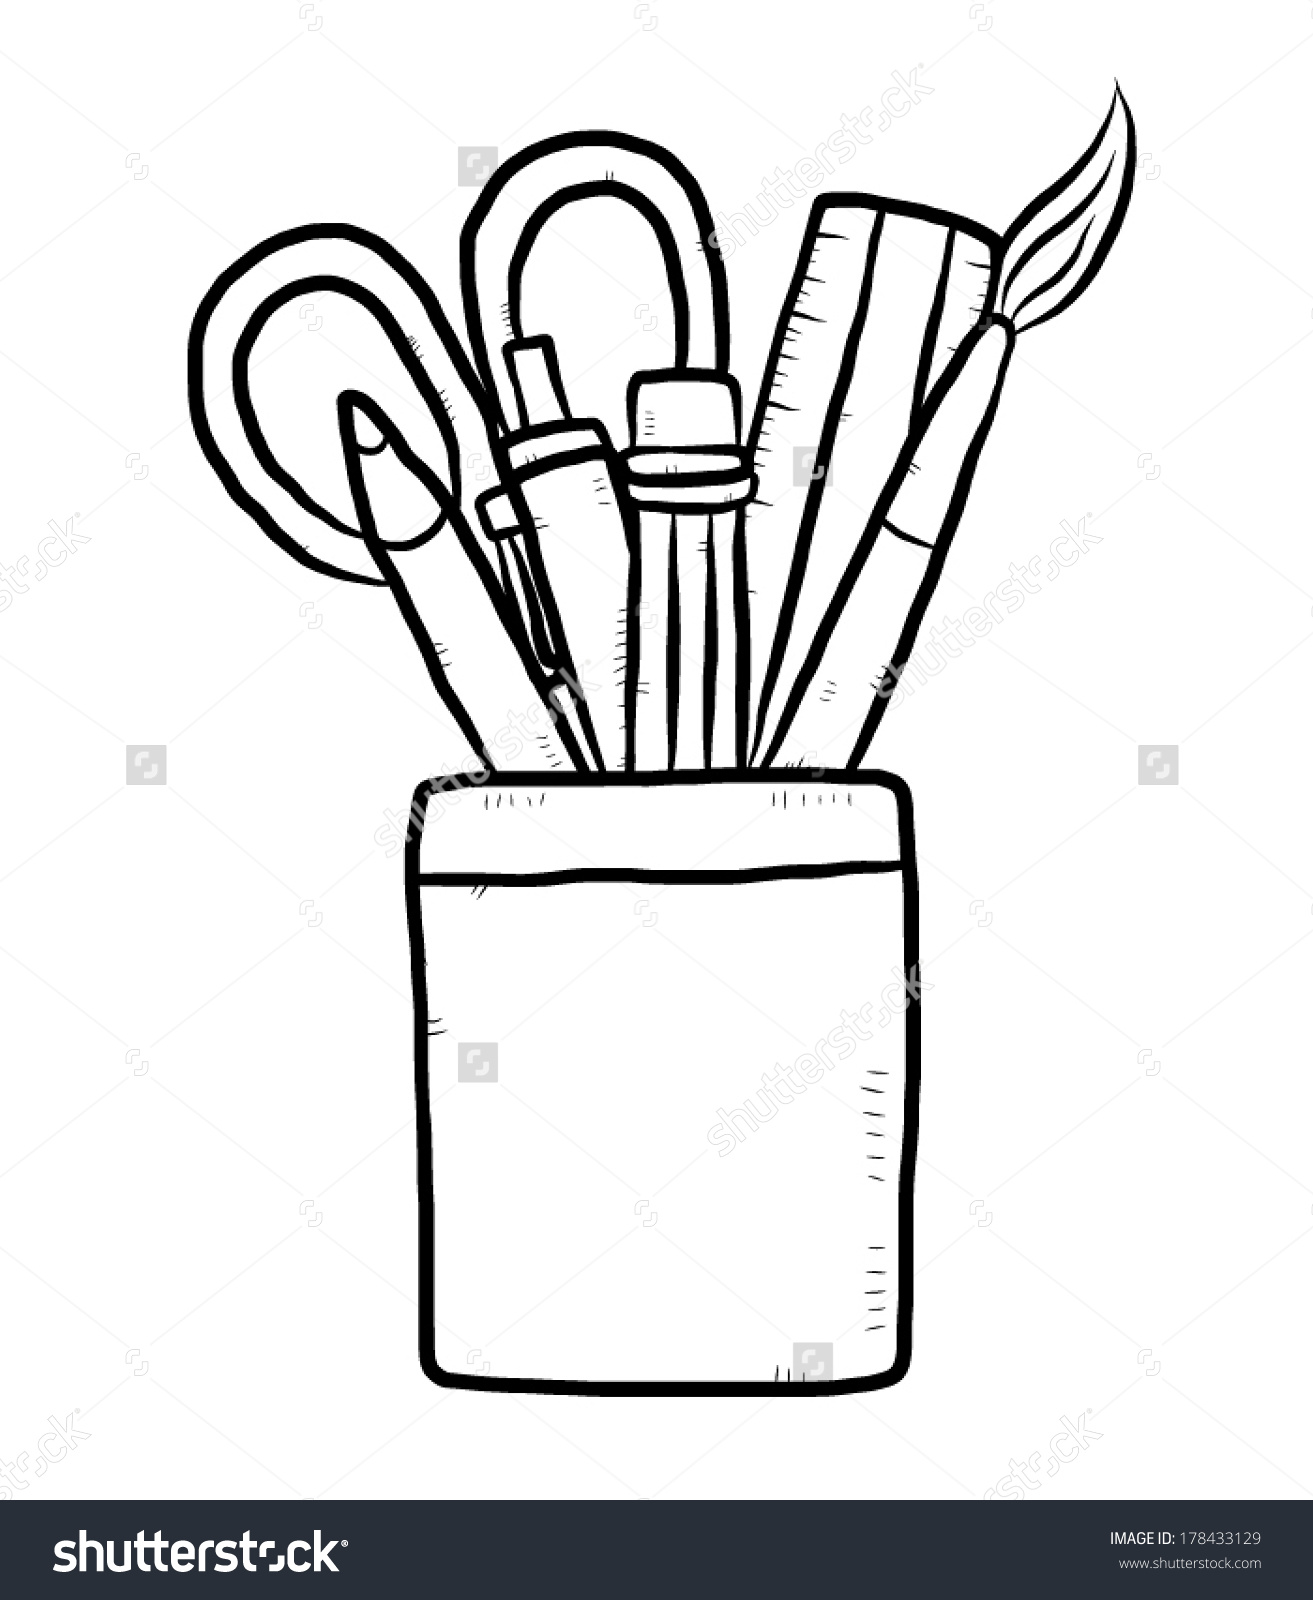 Stationery clipart black and white » Clipart Station.